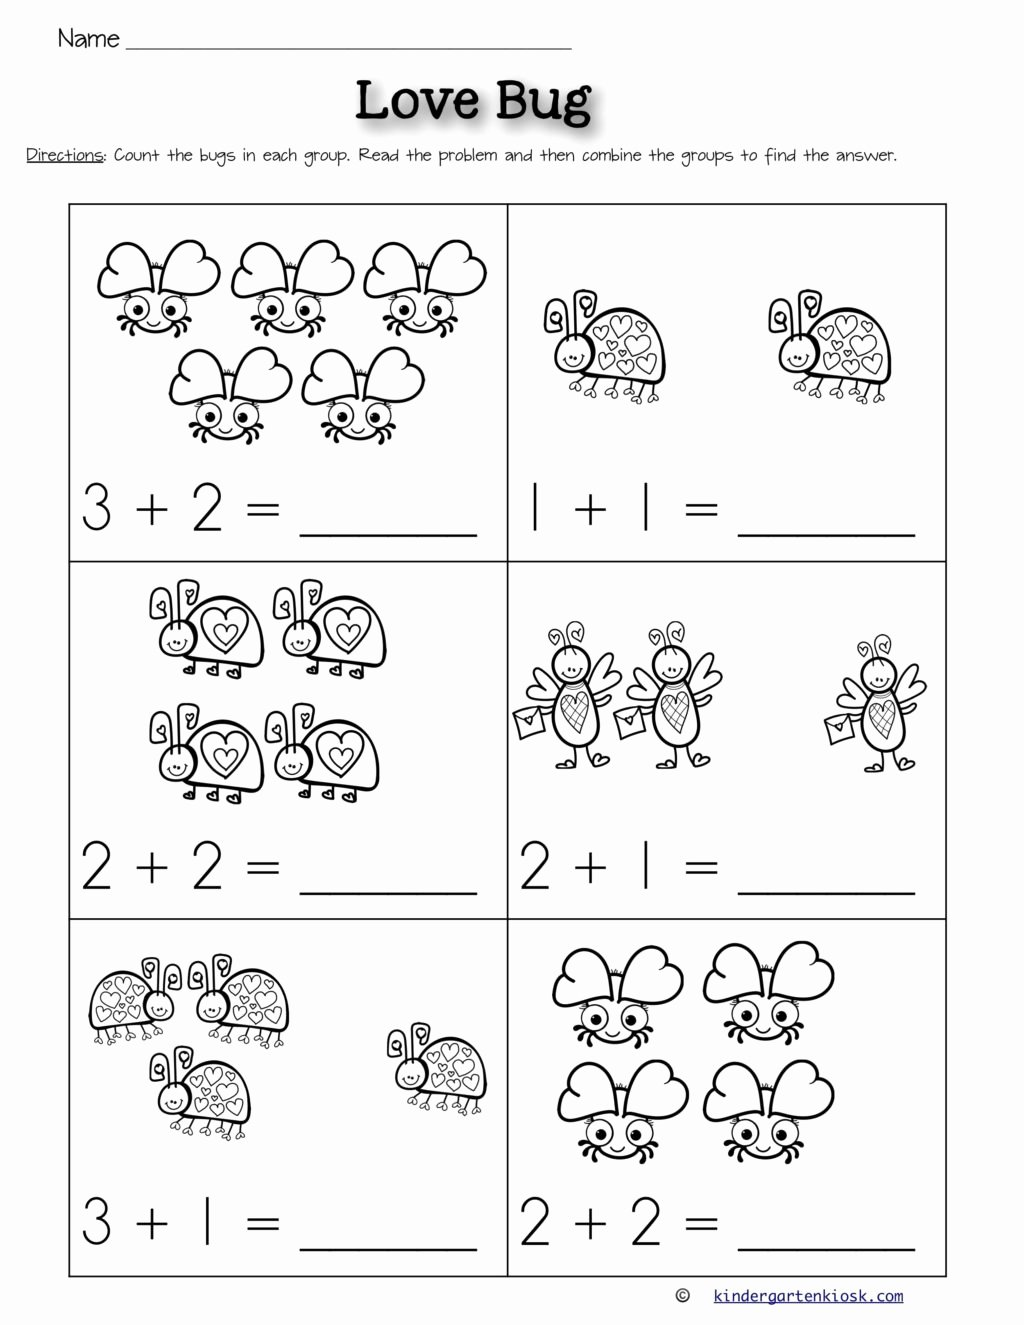 Bug Math Worksheets for Preschoolers Awesome Worksheet Addition forindergarten Worksheets February Math